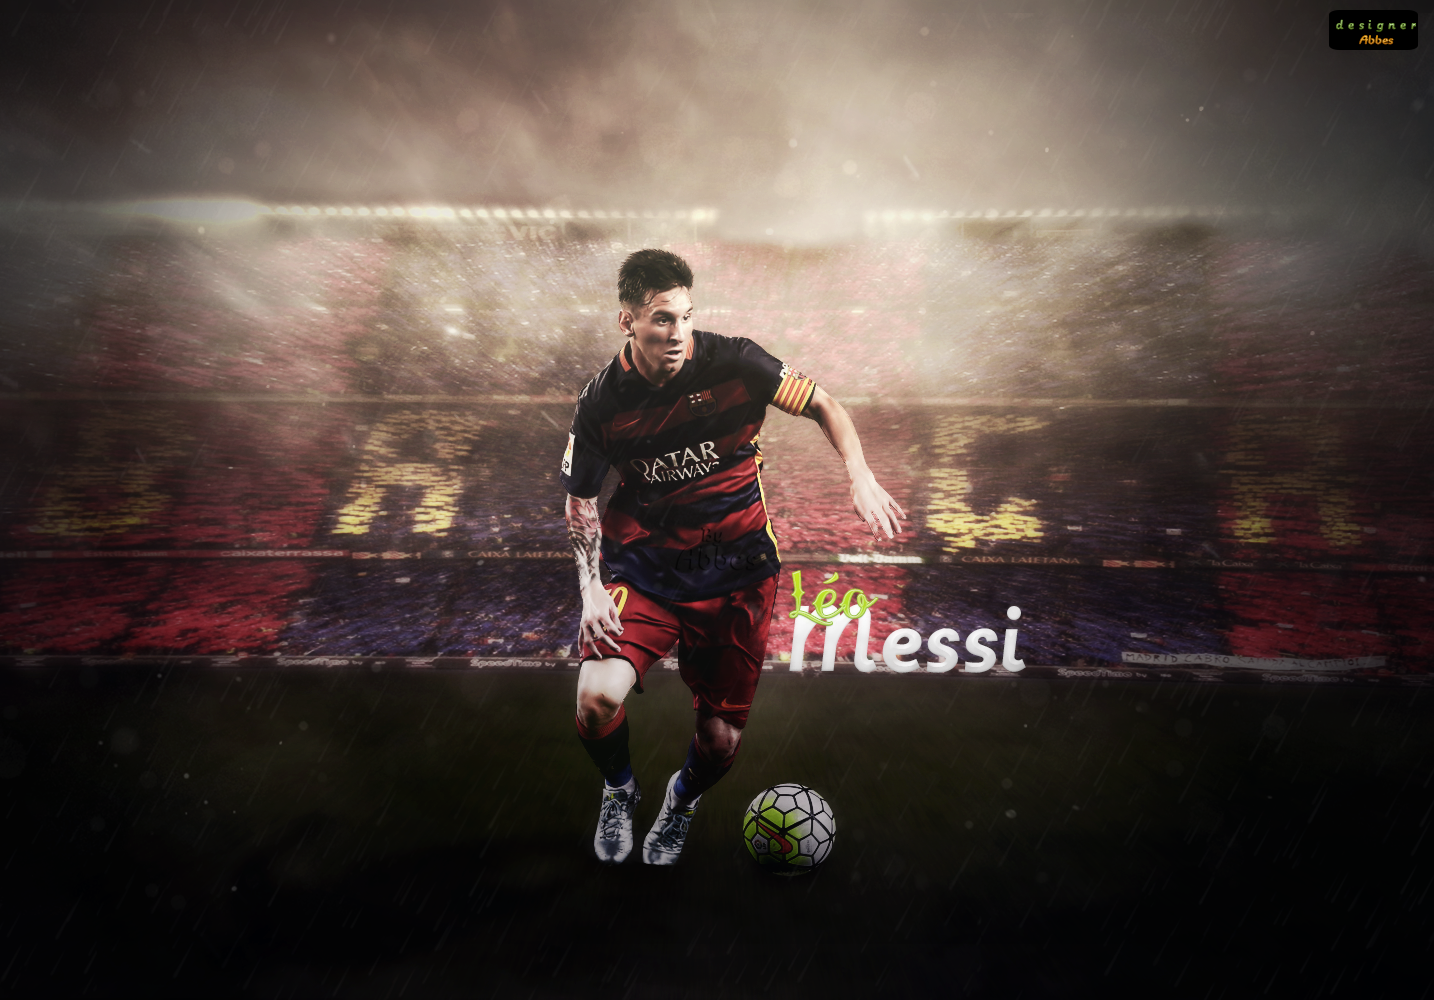 wallpaper other 2015 2016 abbes17 abbes lo messi wallpaper 2015 1434x1000